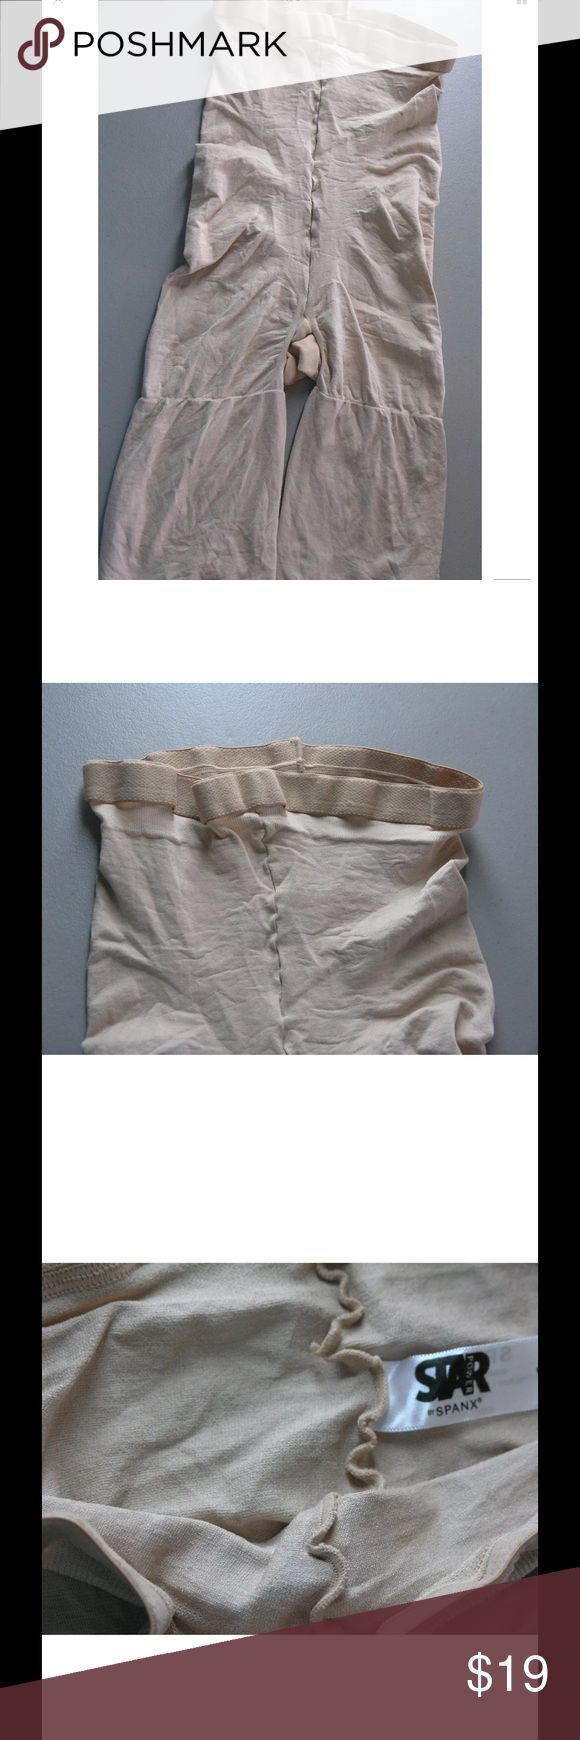 Spanx Shapewear Shaper Shorts Mid Thigh Star Power Spanx Shapewear Shorts High Waist Mid Thigh Shaper Star Power Nude Size E  Elastic waist Soft material Slims/firms and shapes Size E New without tags, Dept store return. Does not appear to have been worn. SPANX Intimates & Sleepwear Shapewear